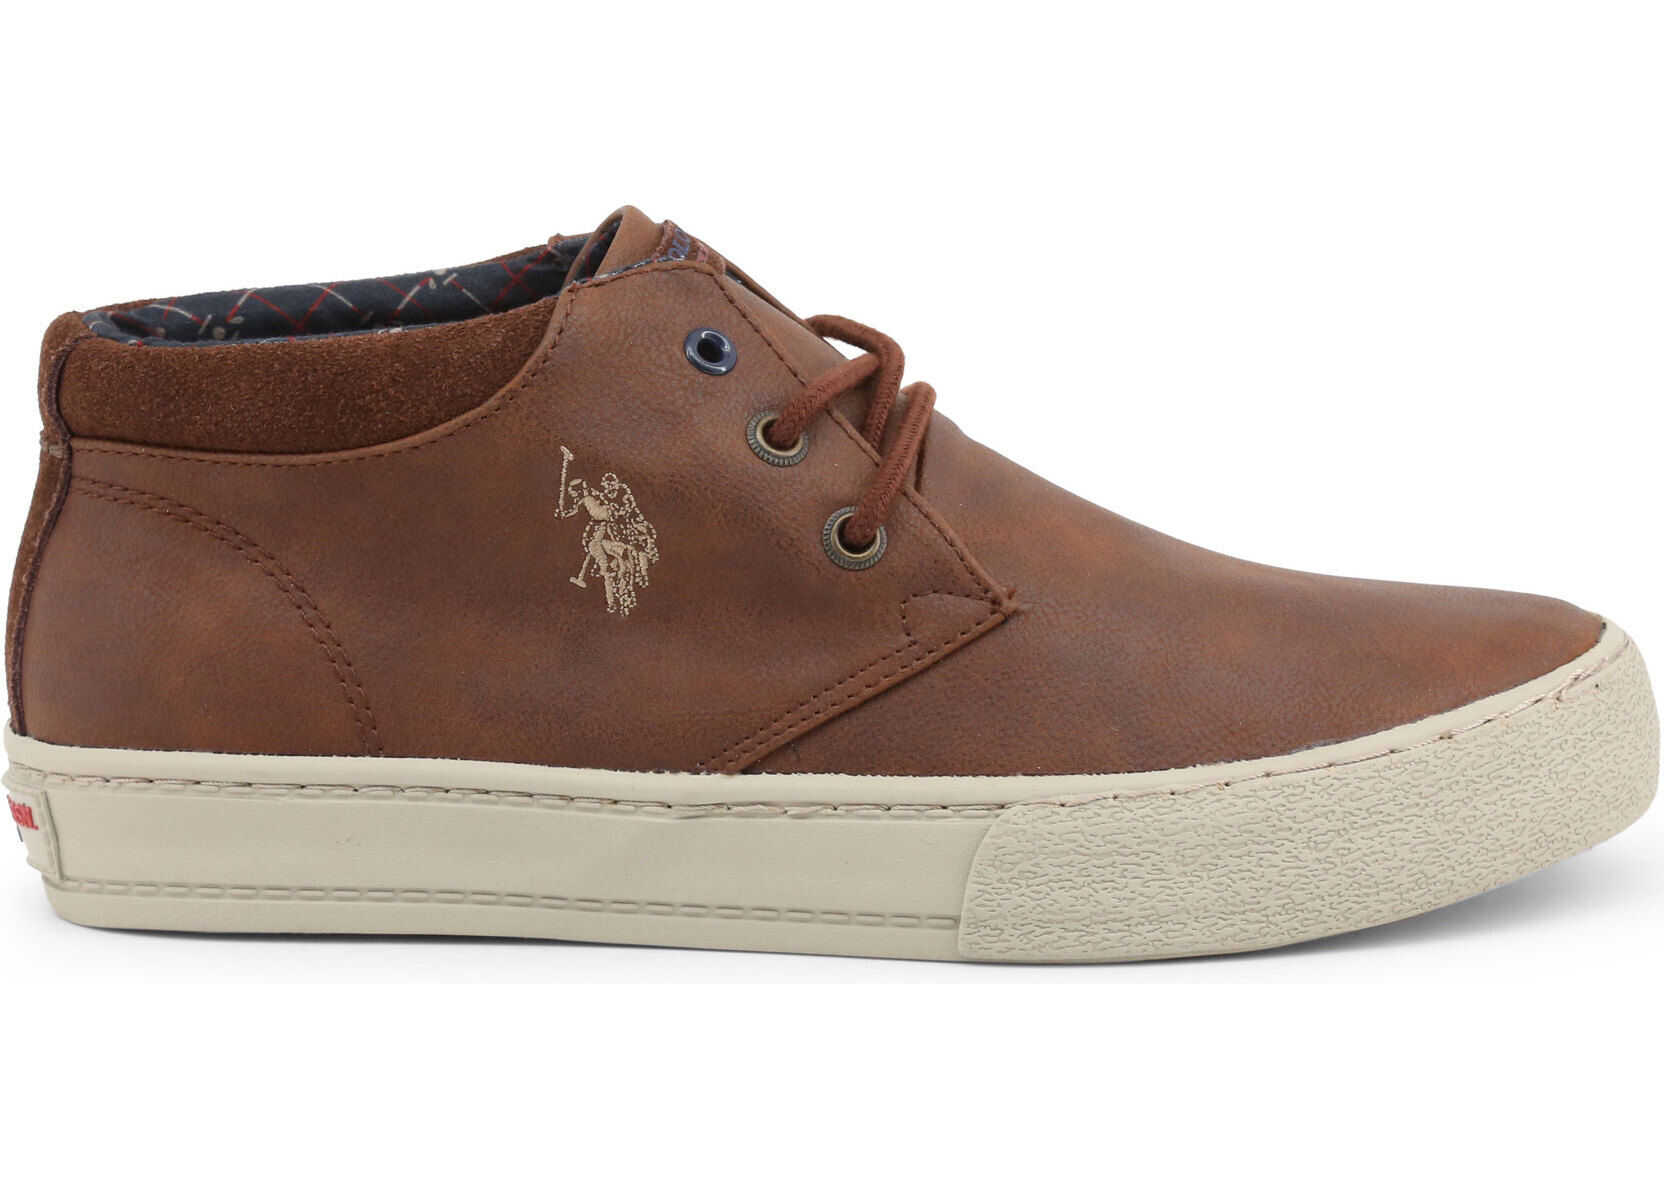 U.S. POLO ASSN. Galan4143W8 Brown